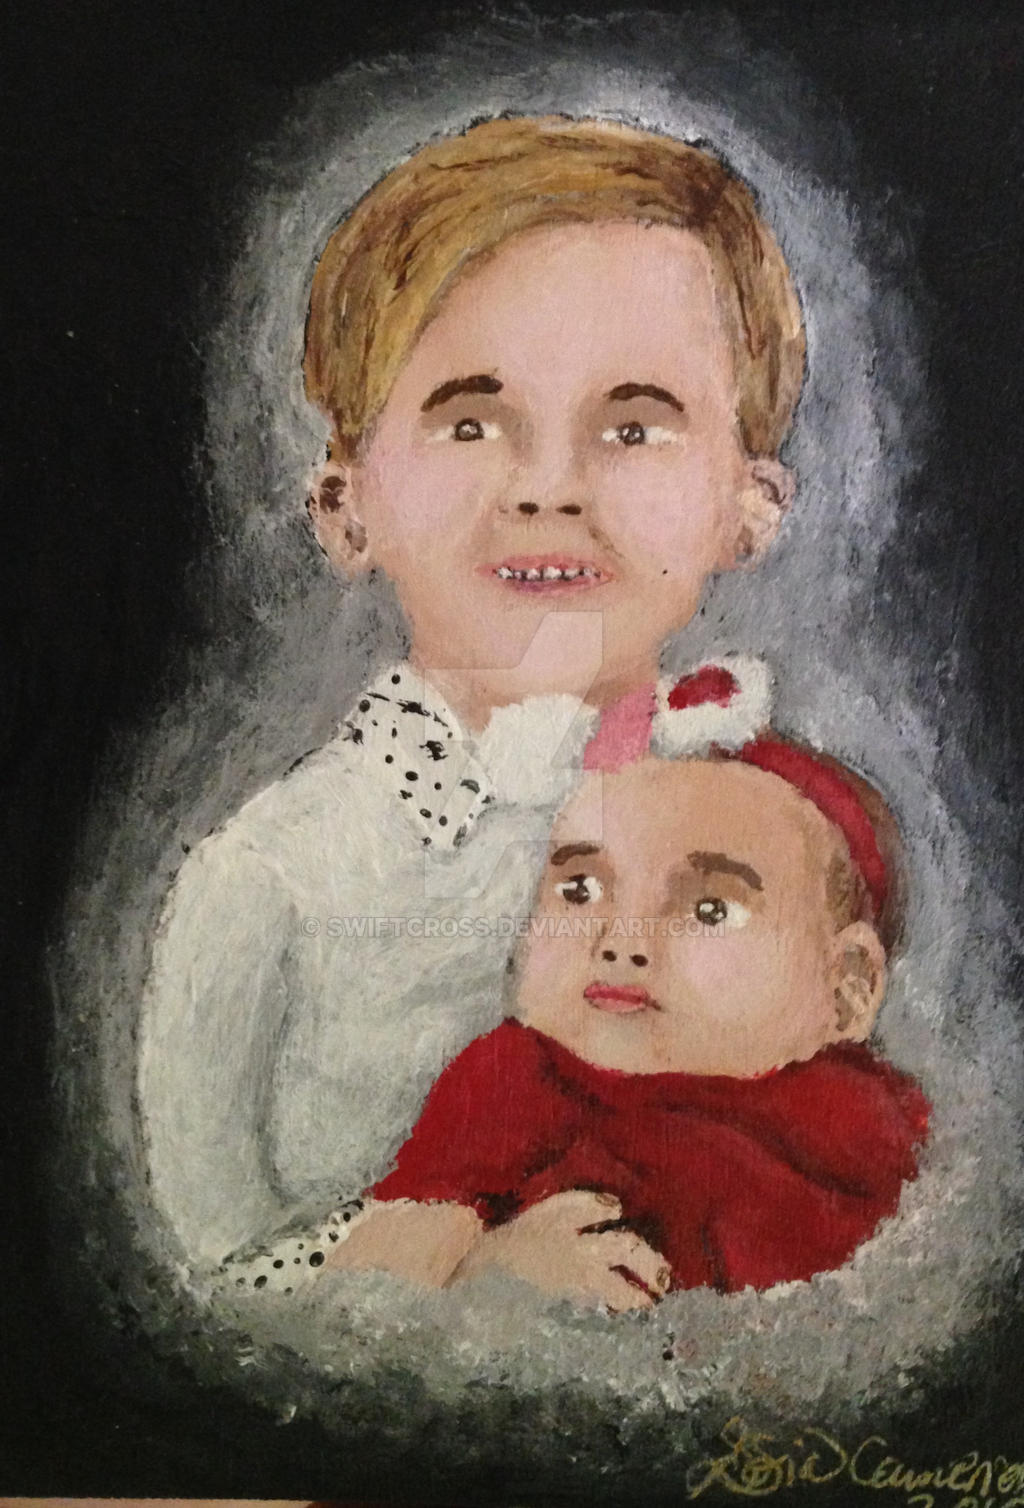 Children-painting by swiftcross